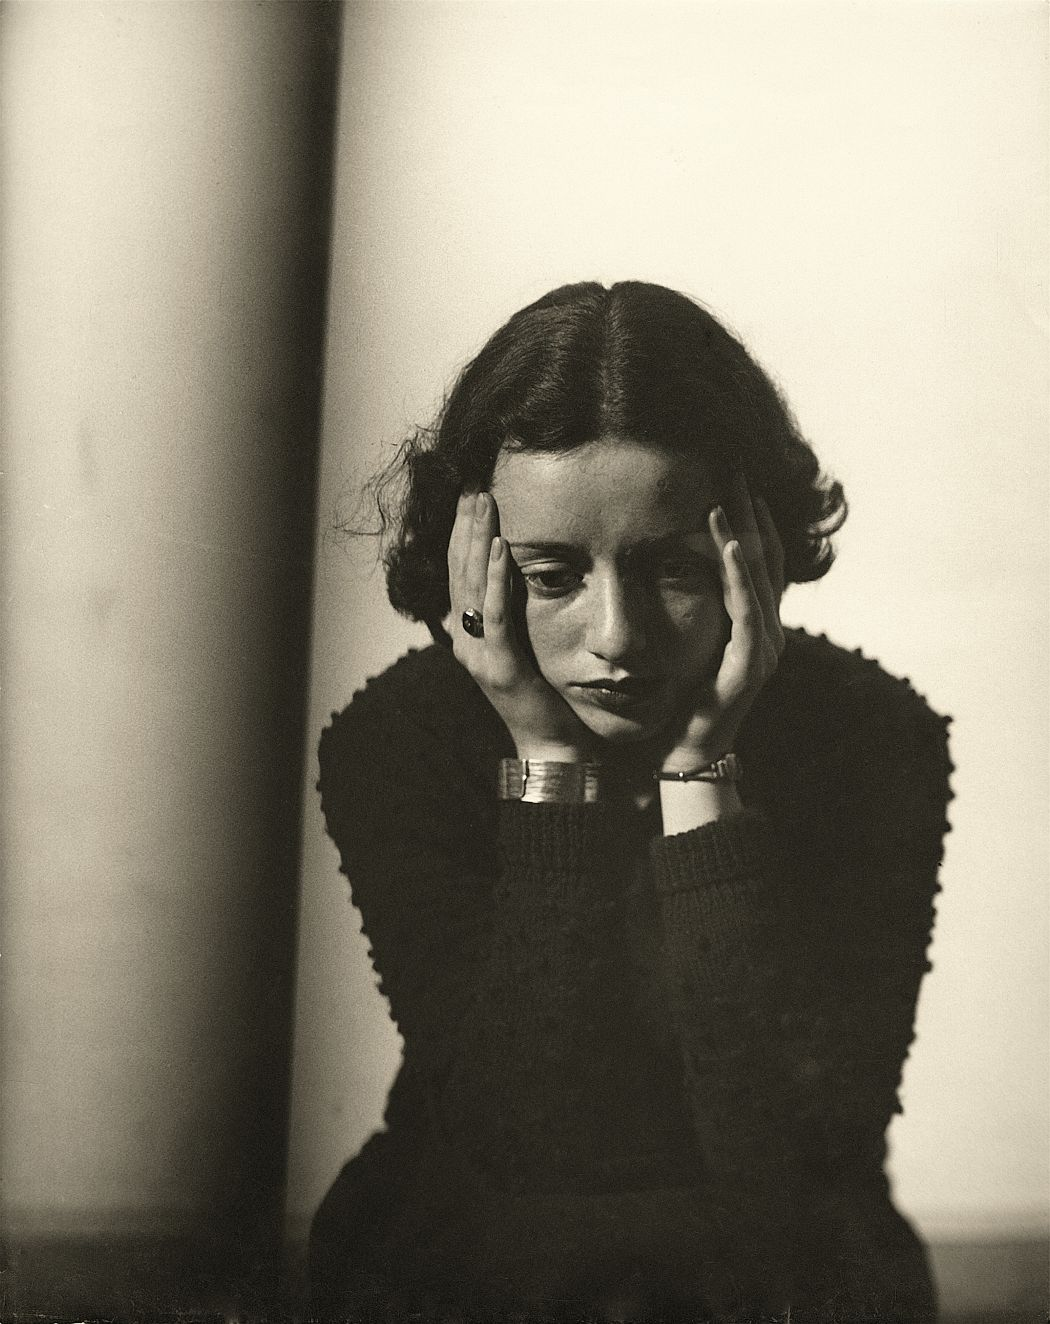 Portrait Composition, (Portrait of Lore Krüger), 1937 © Martini & Ronchetti courtesy Archives Florence Henri